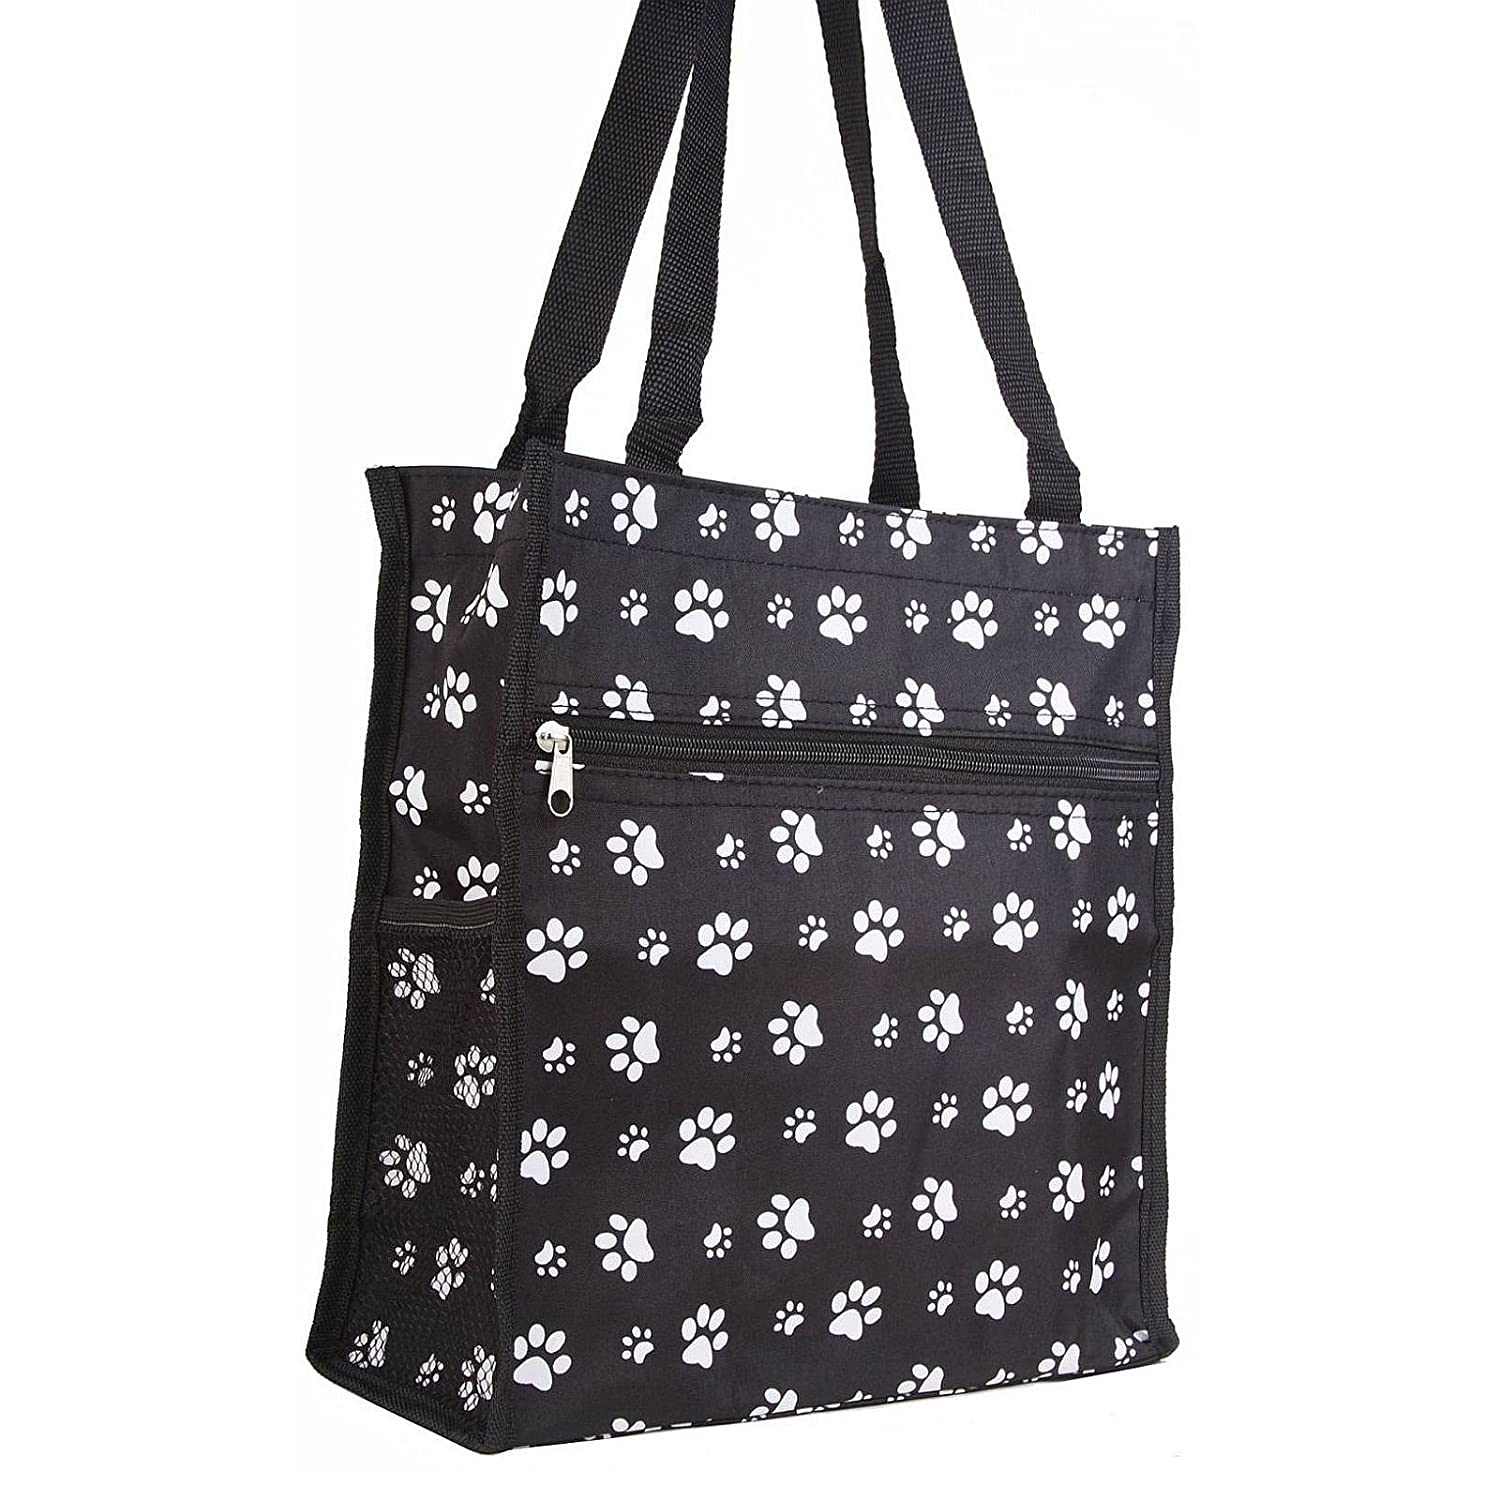 amazon com prima marketing paw print travel tote bag black and